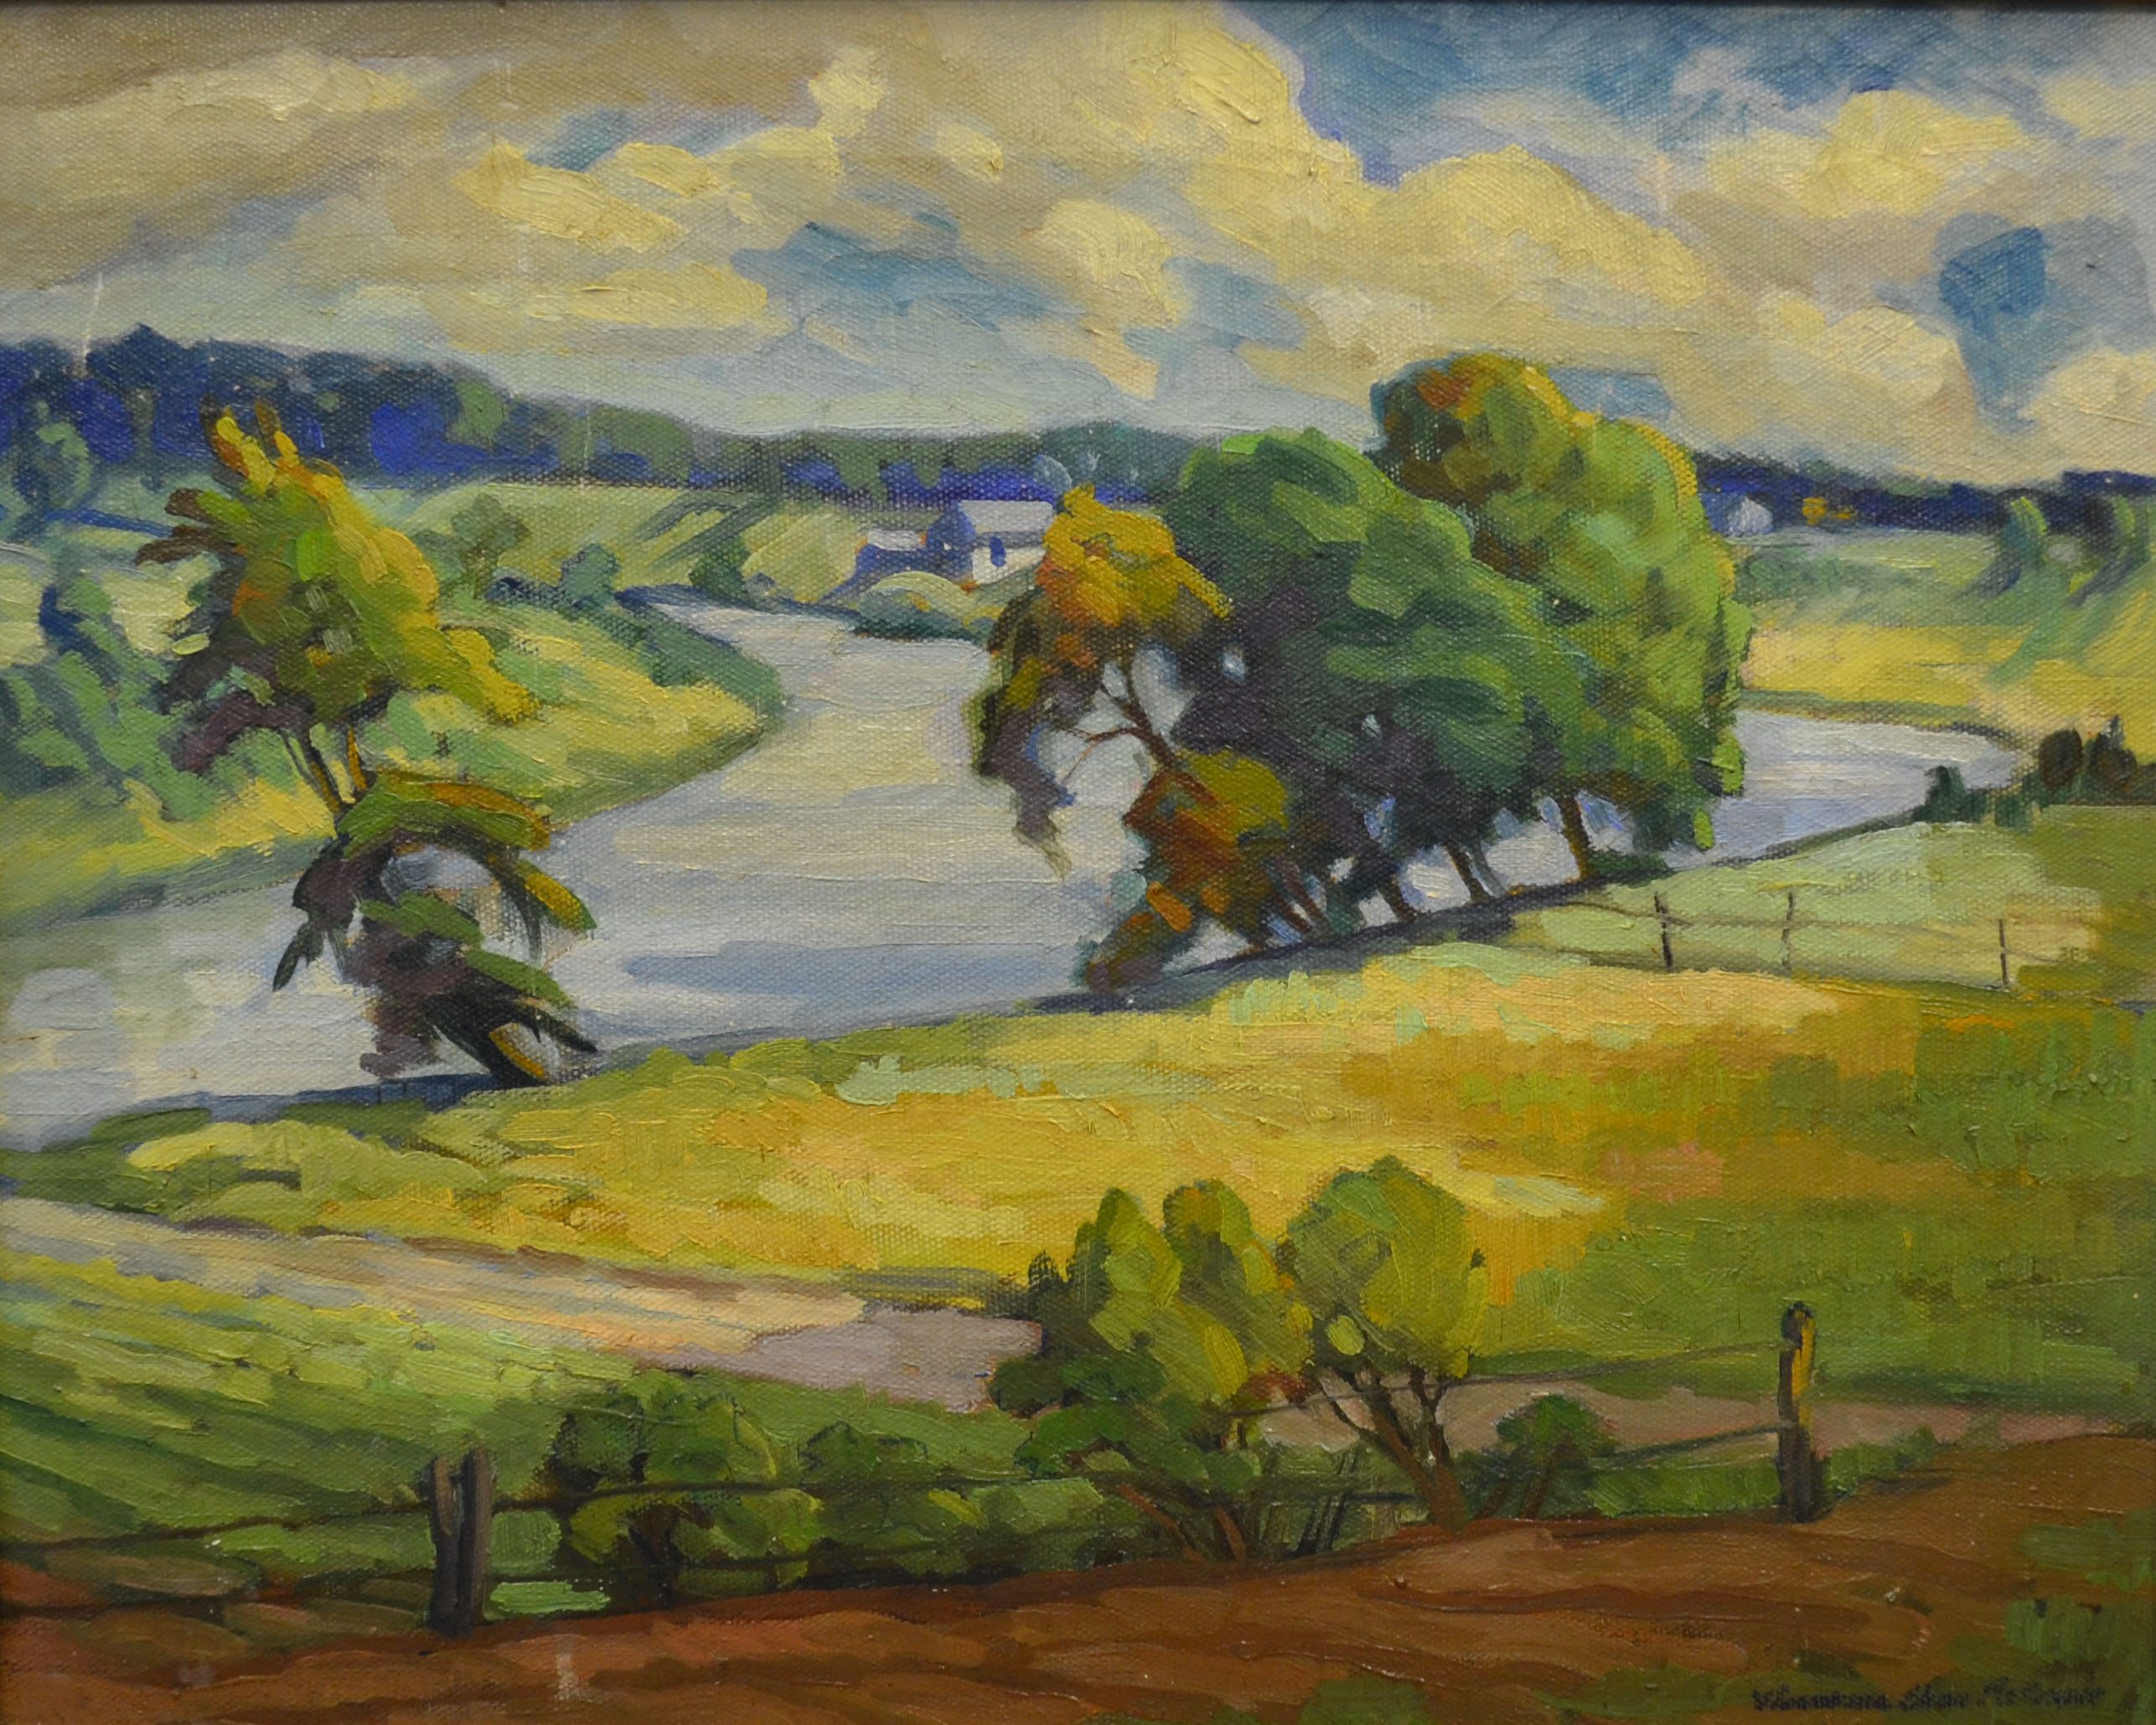 Vinnorma Shaw McKenzie, Bend of the River